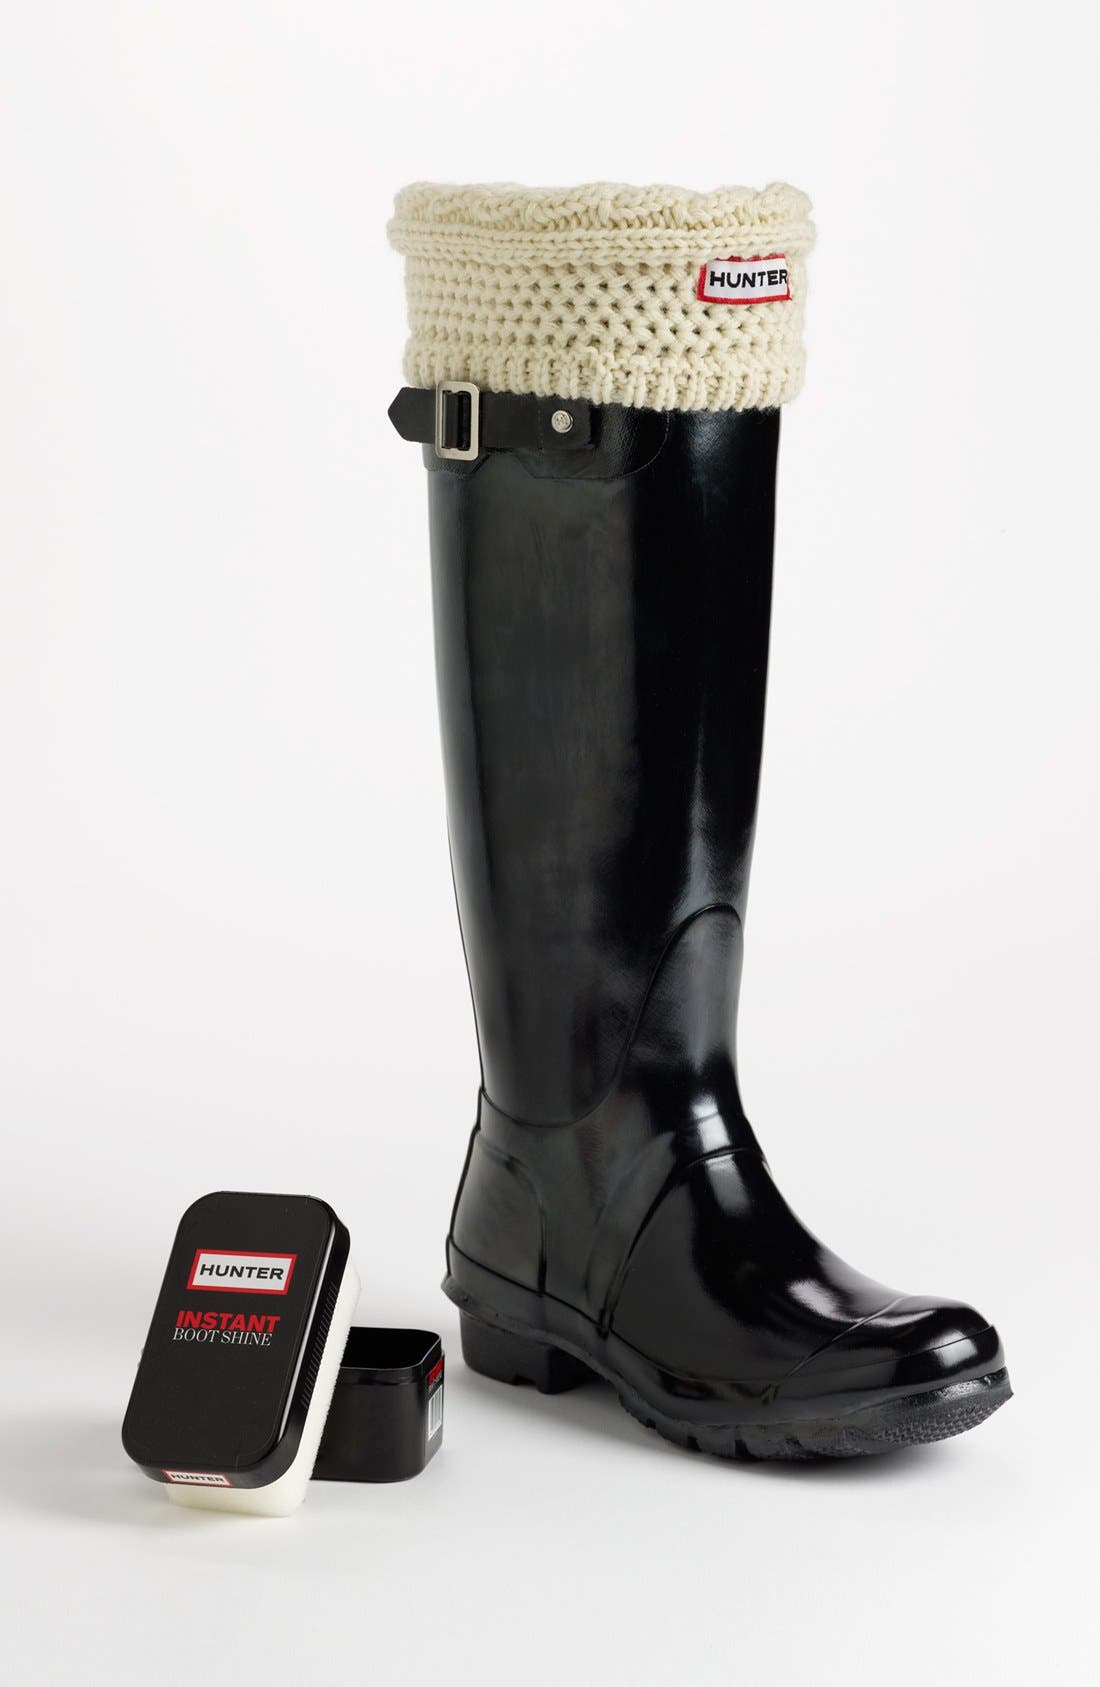 Main Image - Hunter 'Original Tall' Gloss Rain Boot, Cable Cuff Welly Socks & Instant Boot Shine Sponge